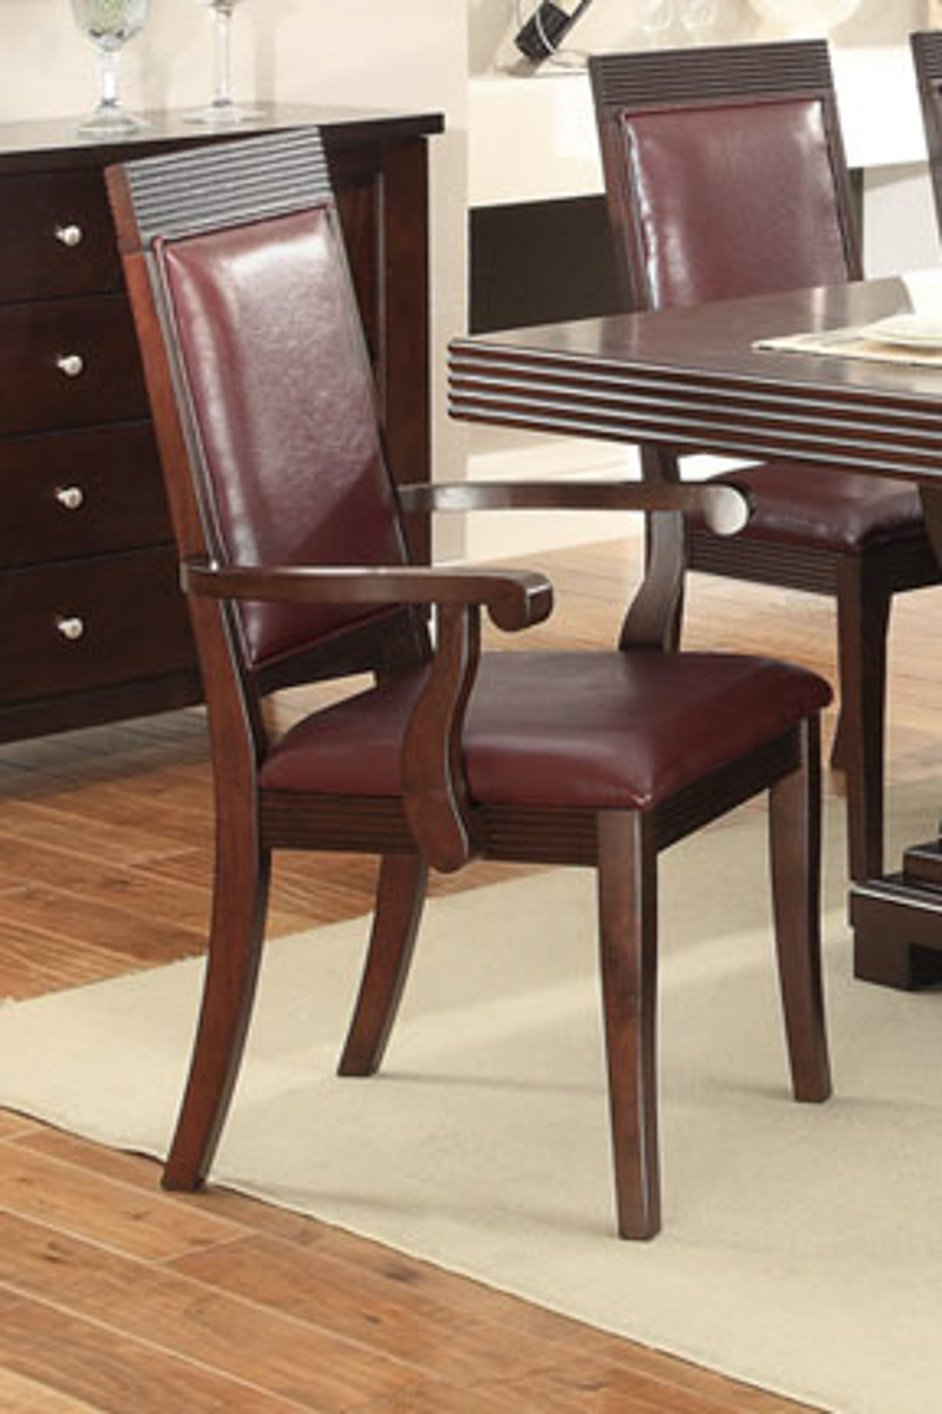 Red Wood Dining Chair Steal A Sofa Furniture Outlet Los